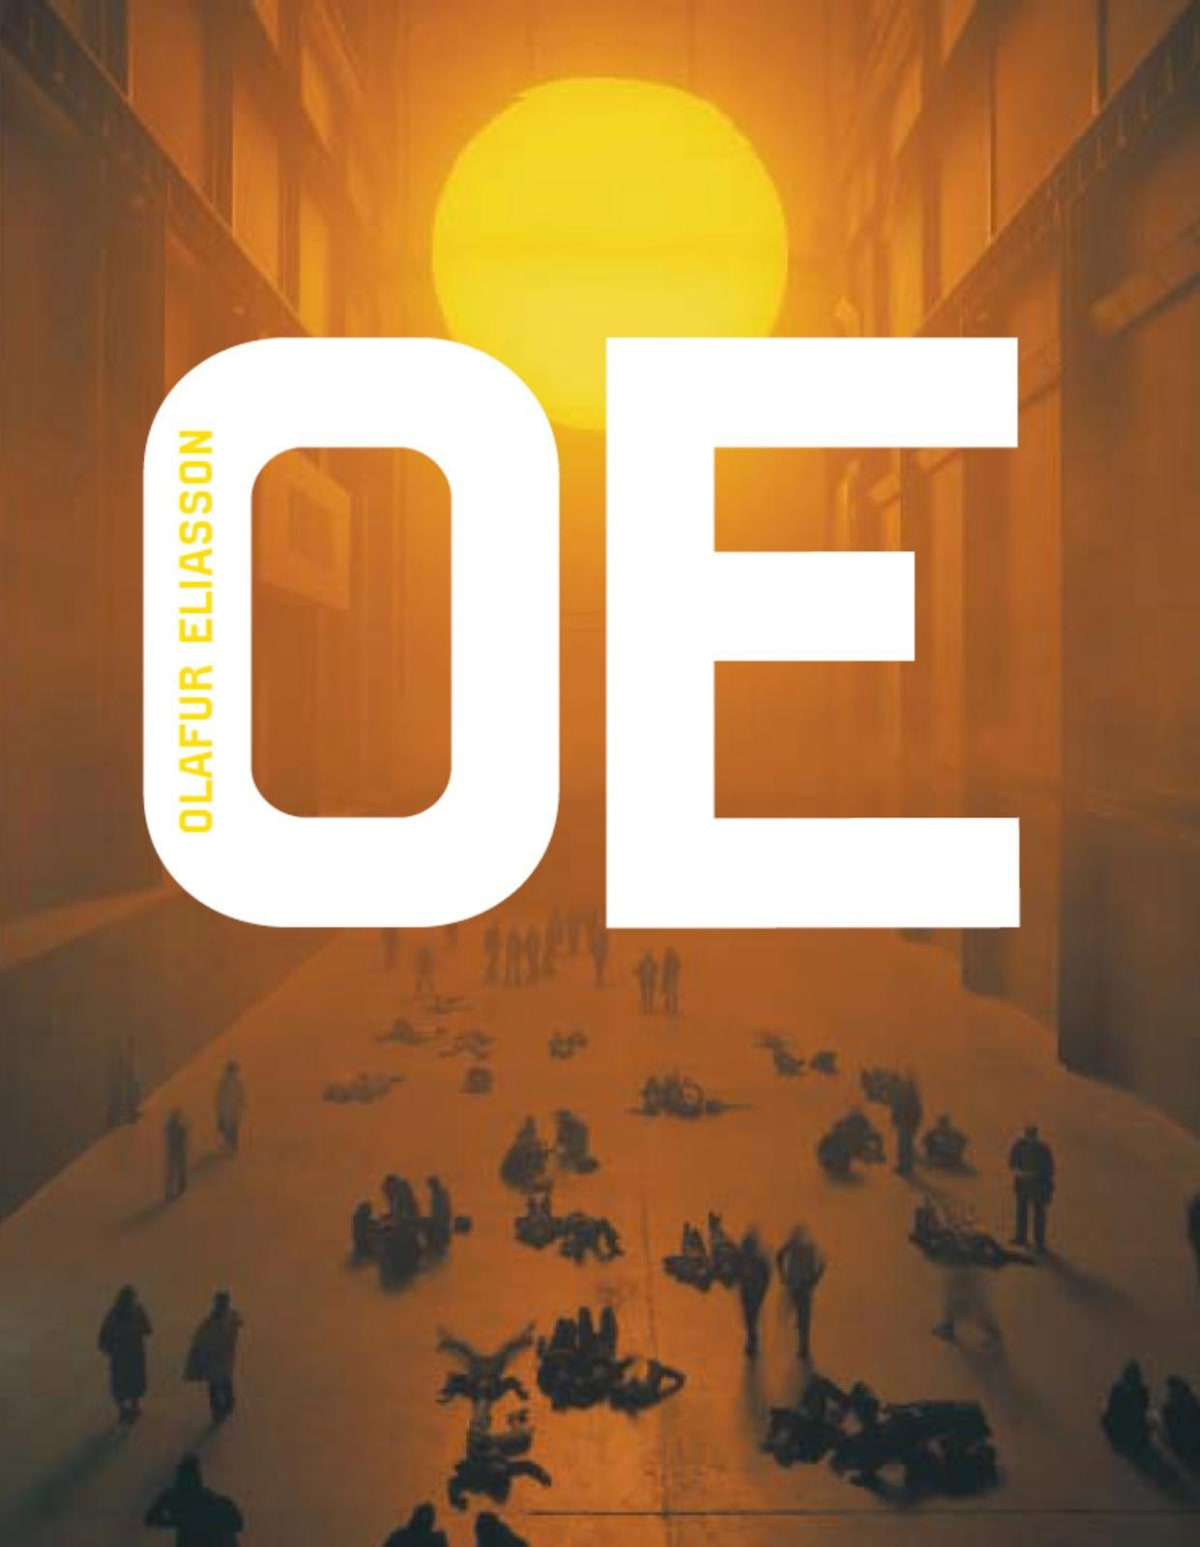 Cover of Olafur Eliasson monograph book featuring The Weather Project in Tate turbine hall